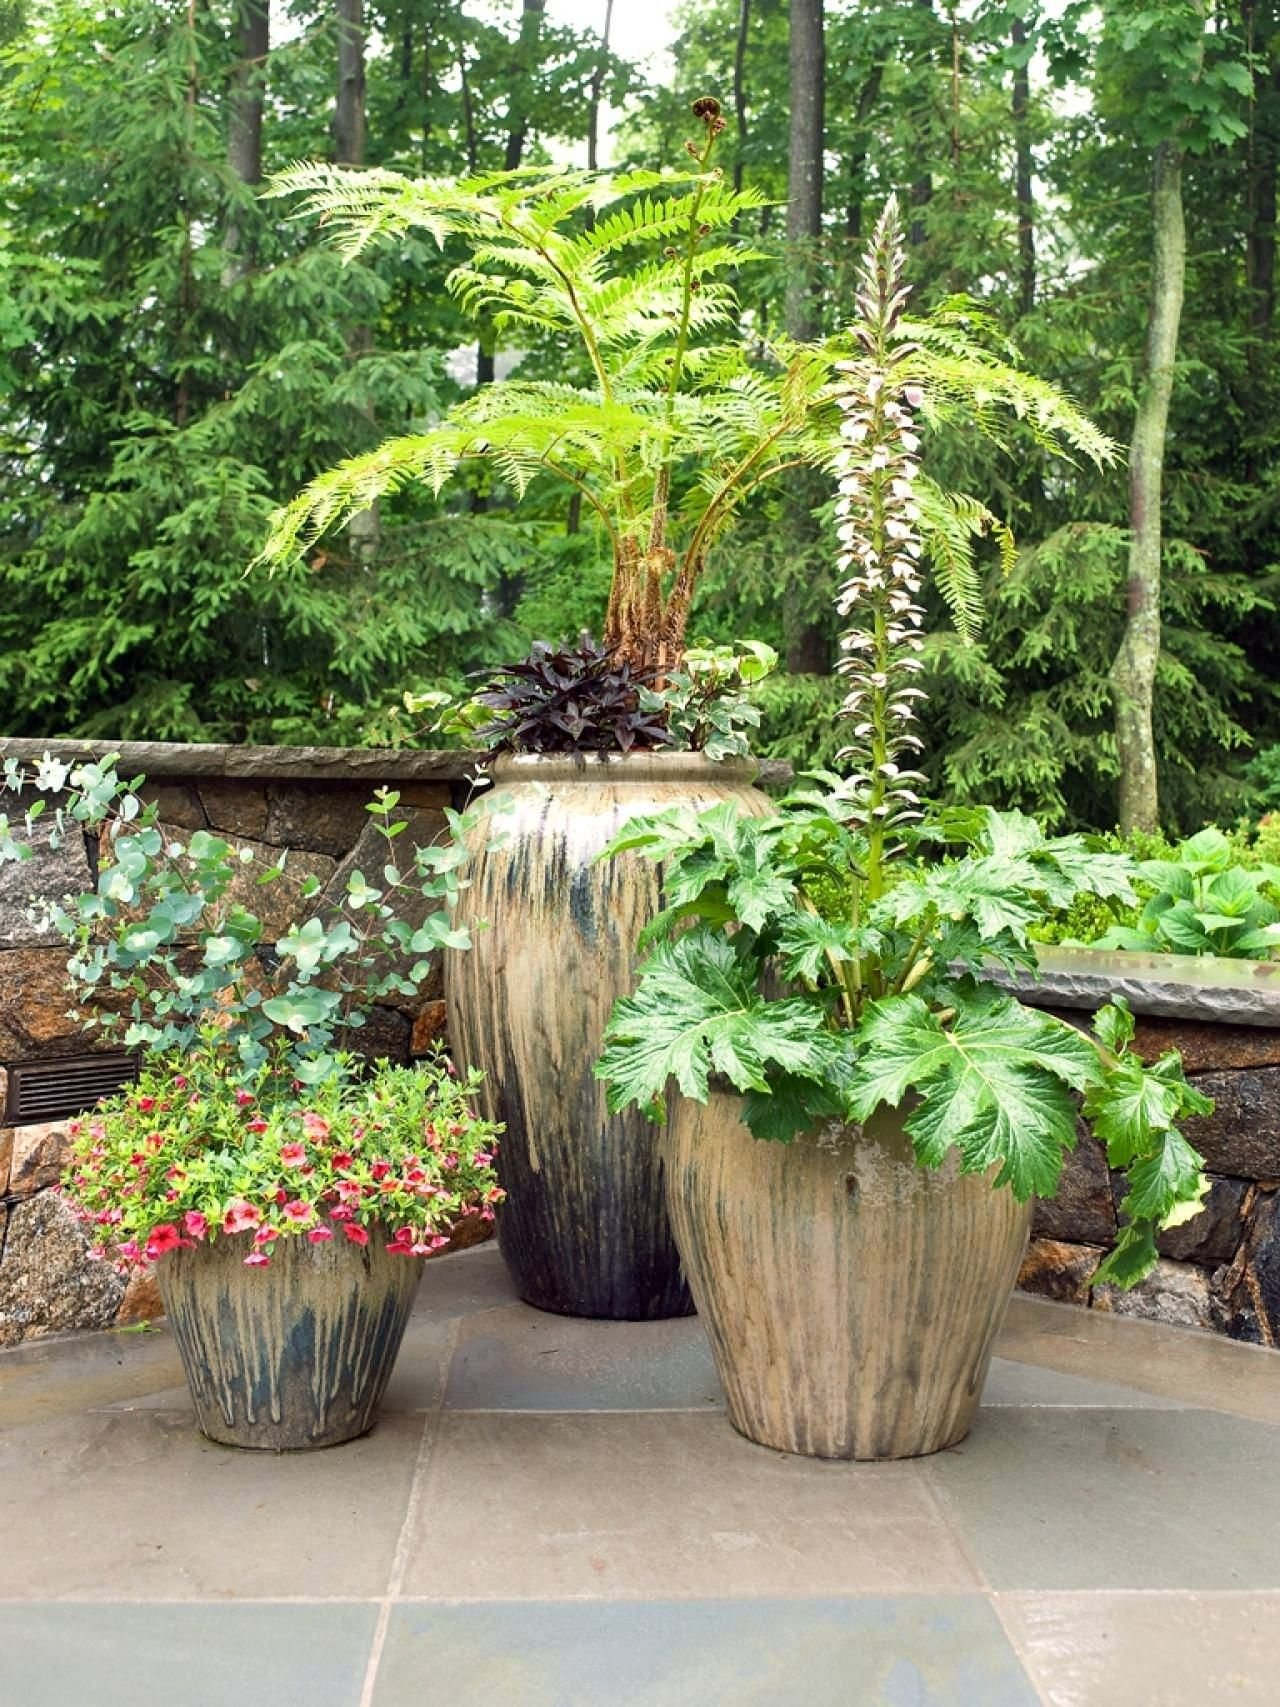 10 Nice Flower Pot Ideas For Patio 11 most essential container garden design tips every container 2020